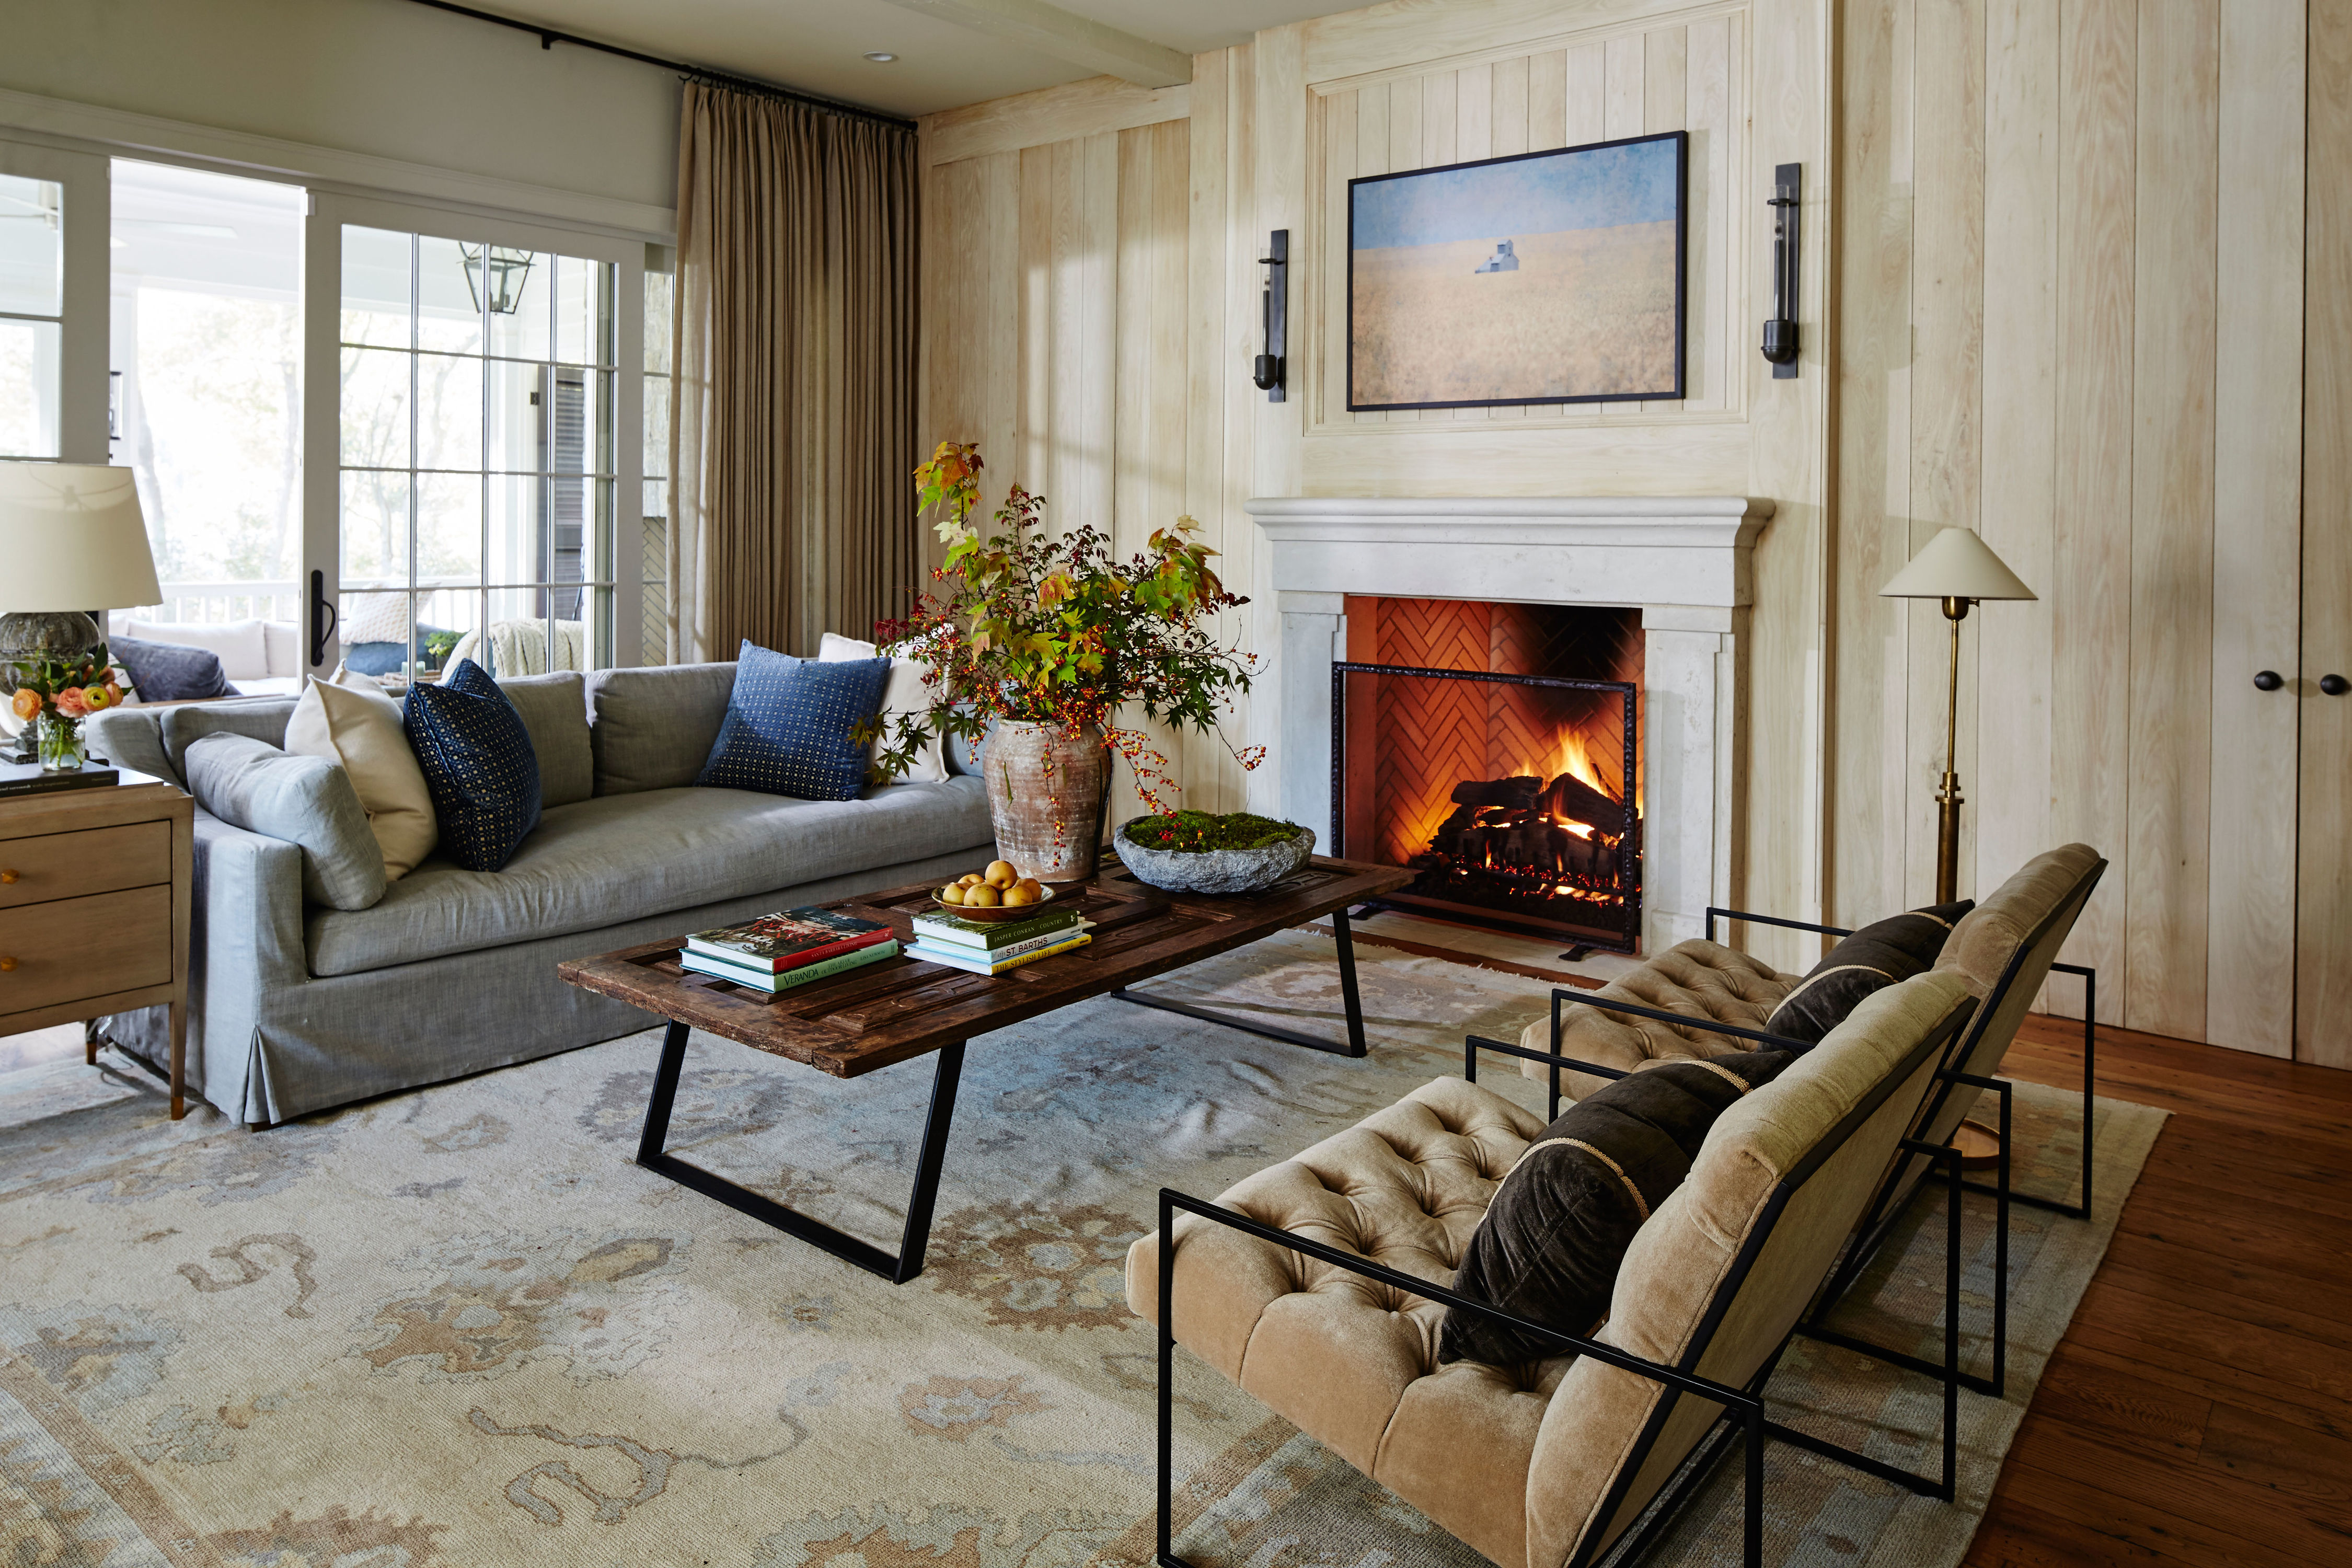 7 Cozy Home Essentials Your Home Needs This Winter